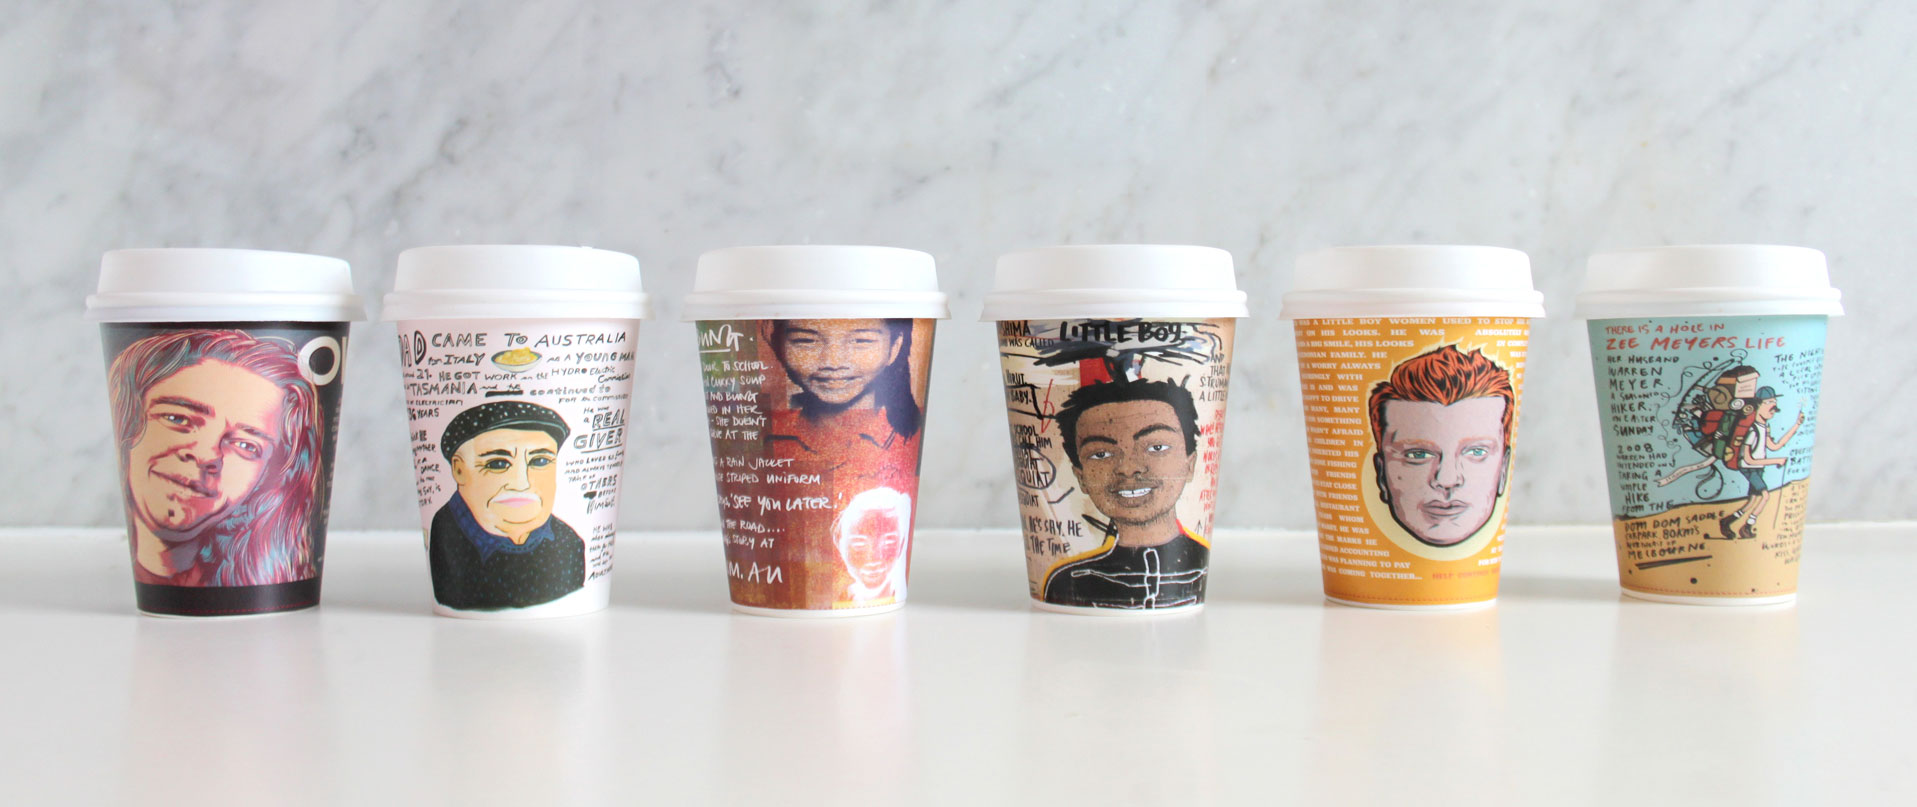 Unmissable cups